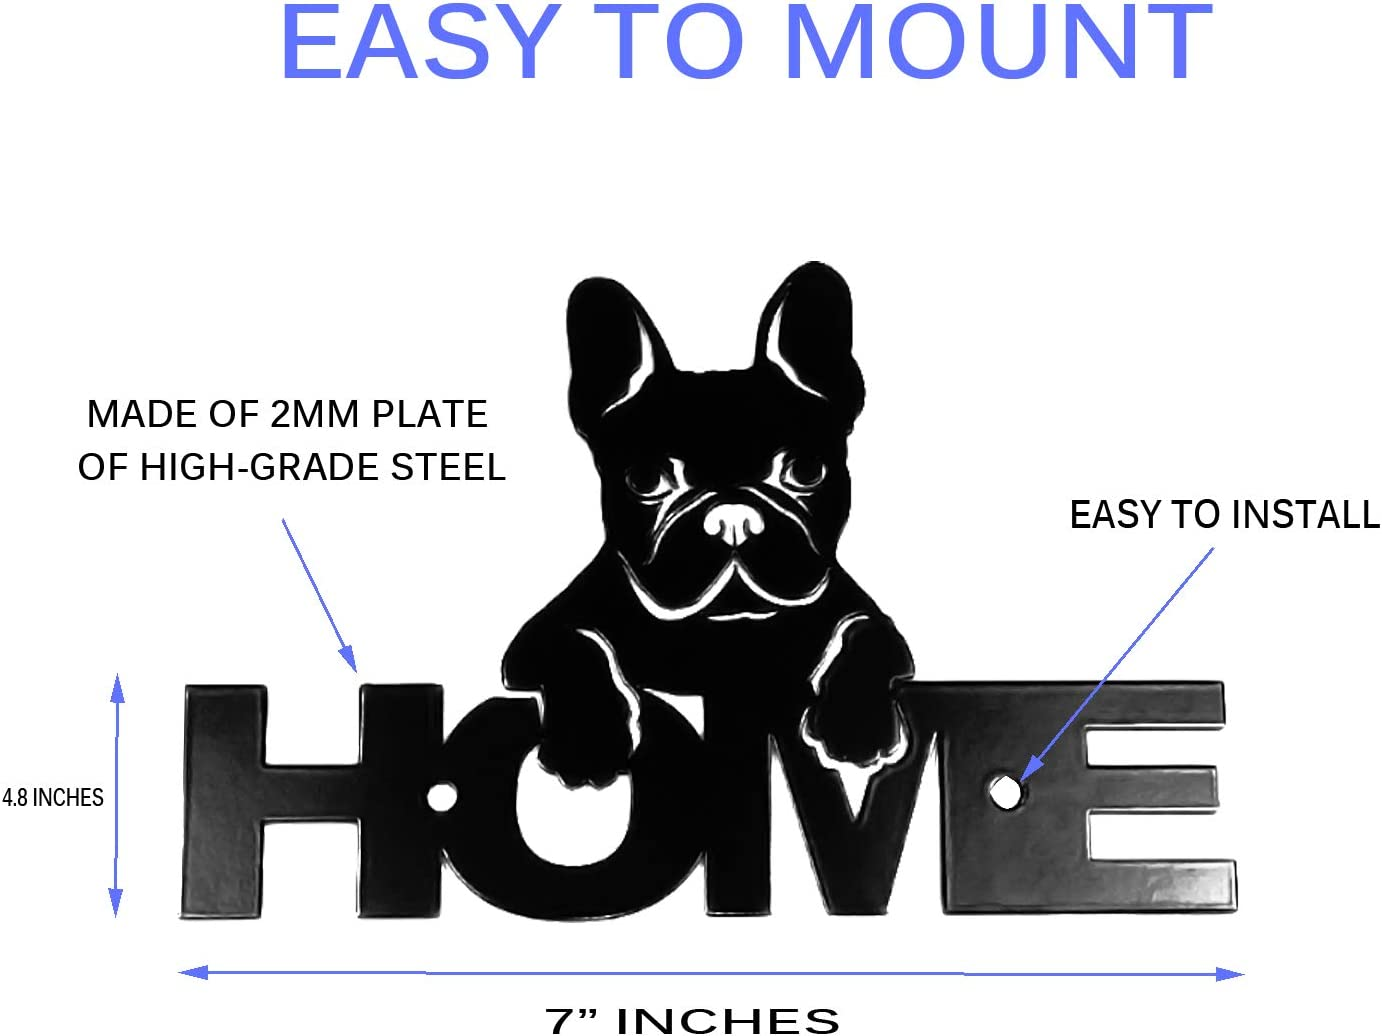 French Bulldog Handcrafted Metal Welcome Sign black silhouette Made in the USA